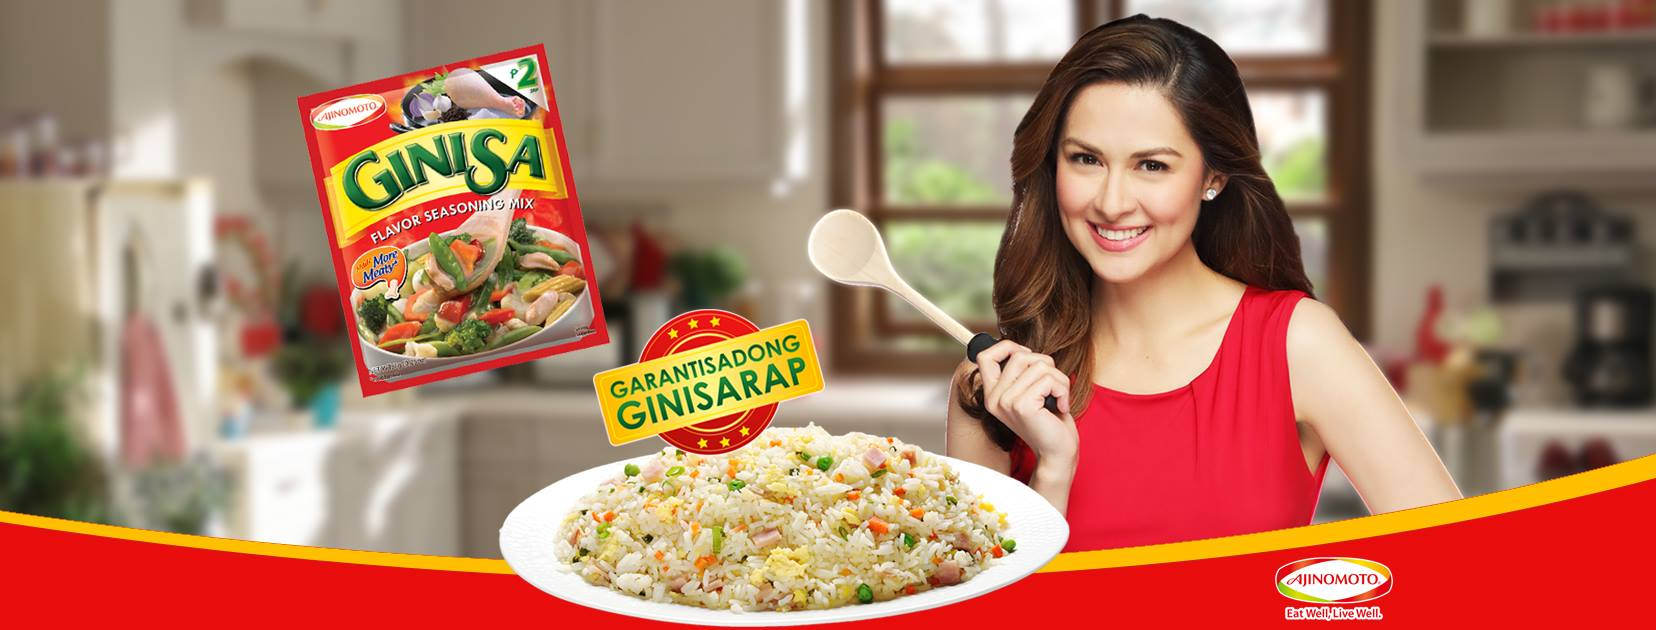 marian-rivera-make-garantisadong-ginisarap-dishes-aji-ginisa